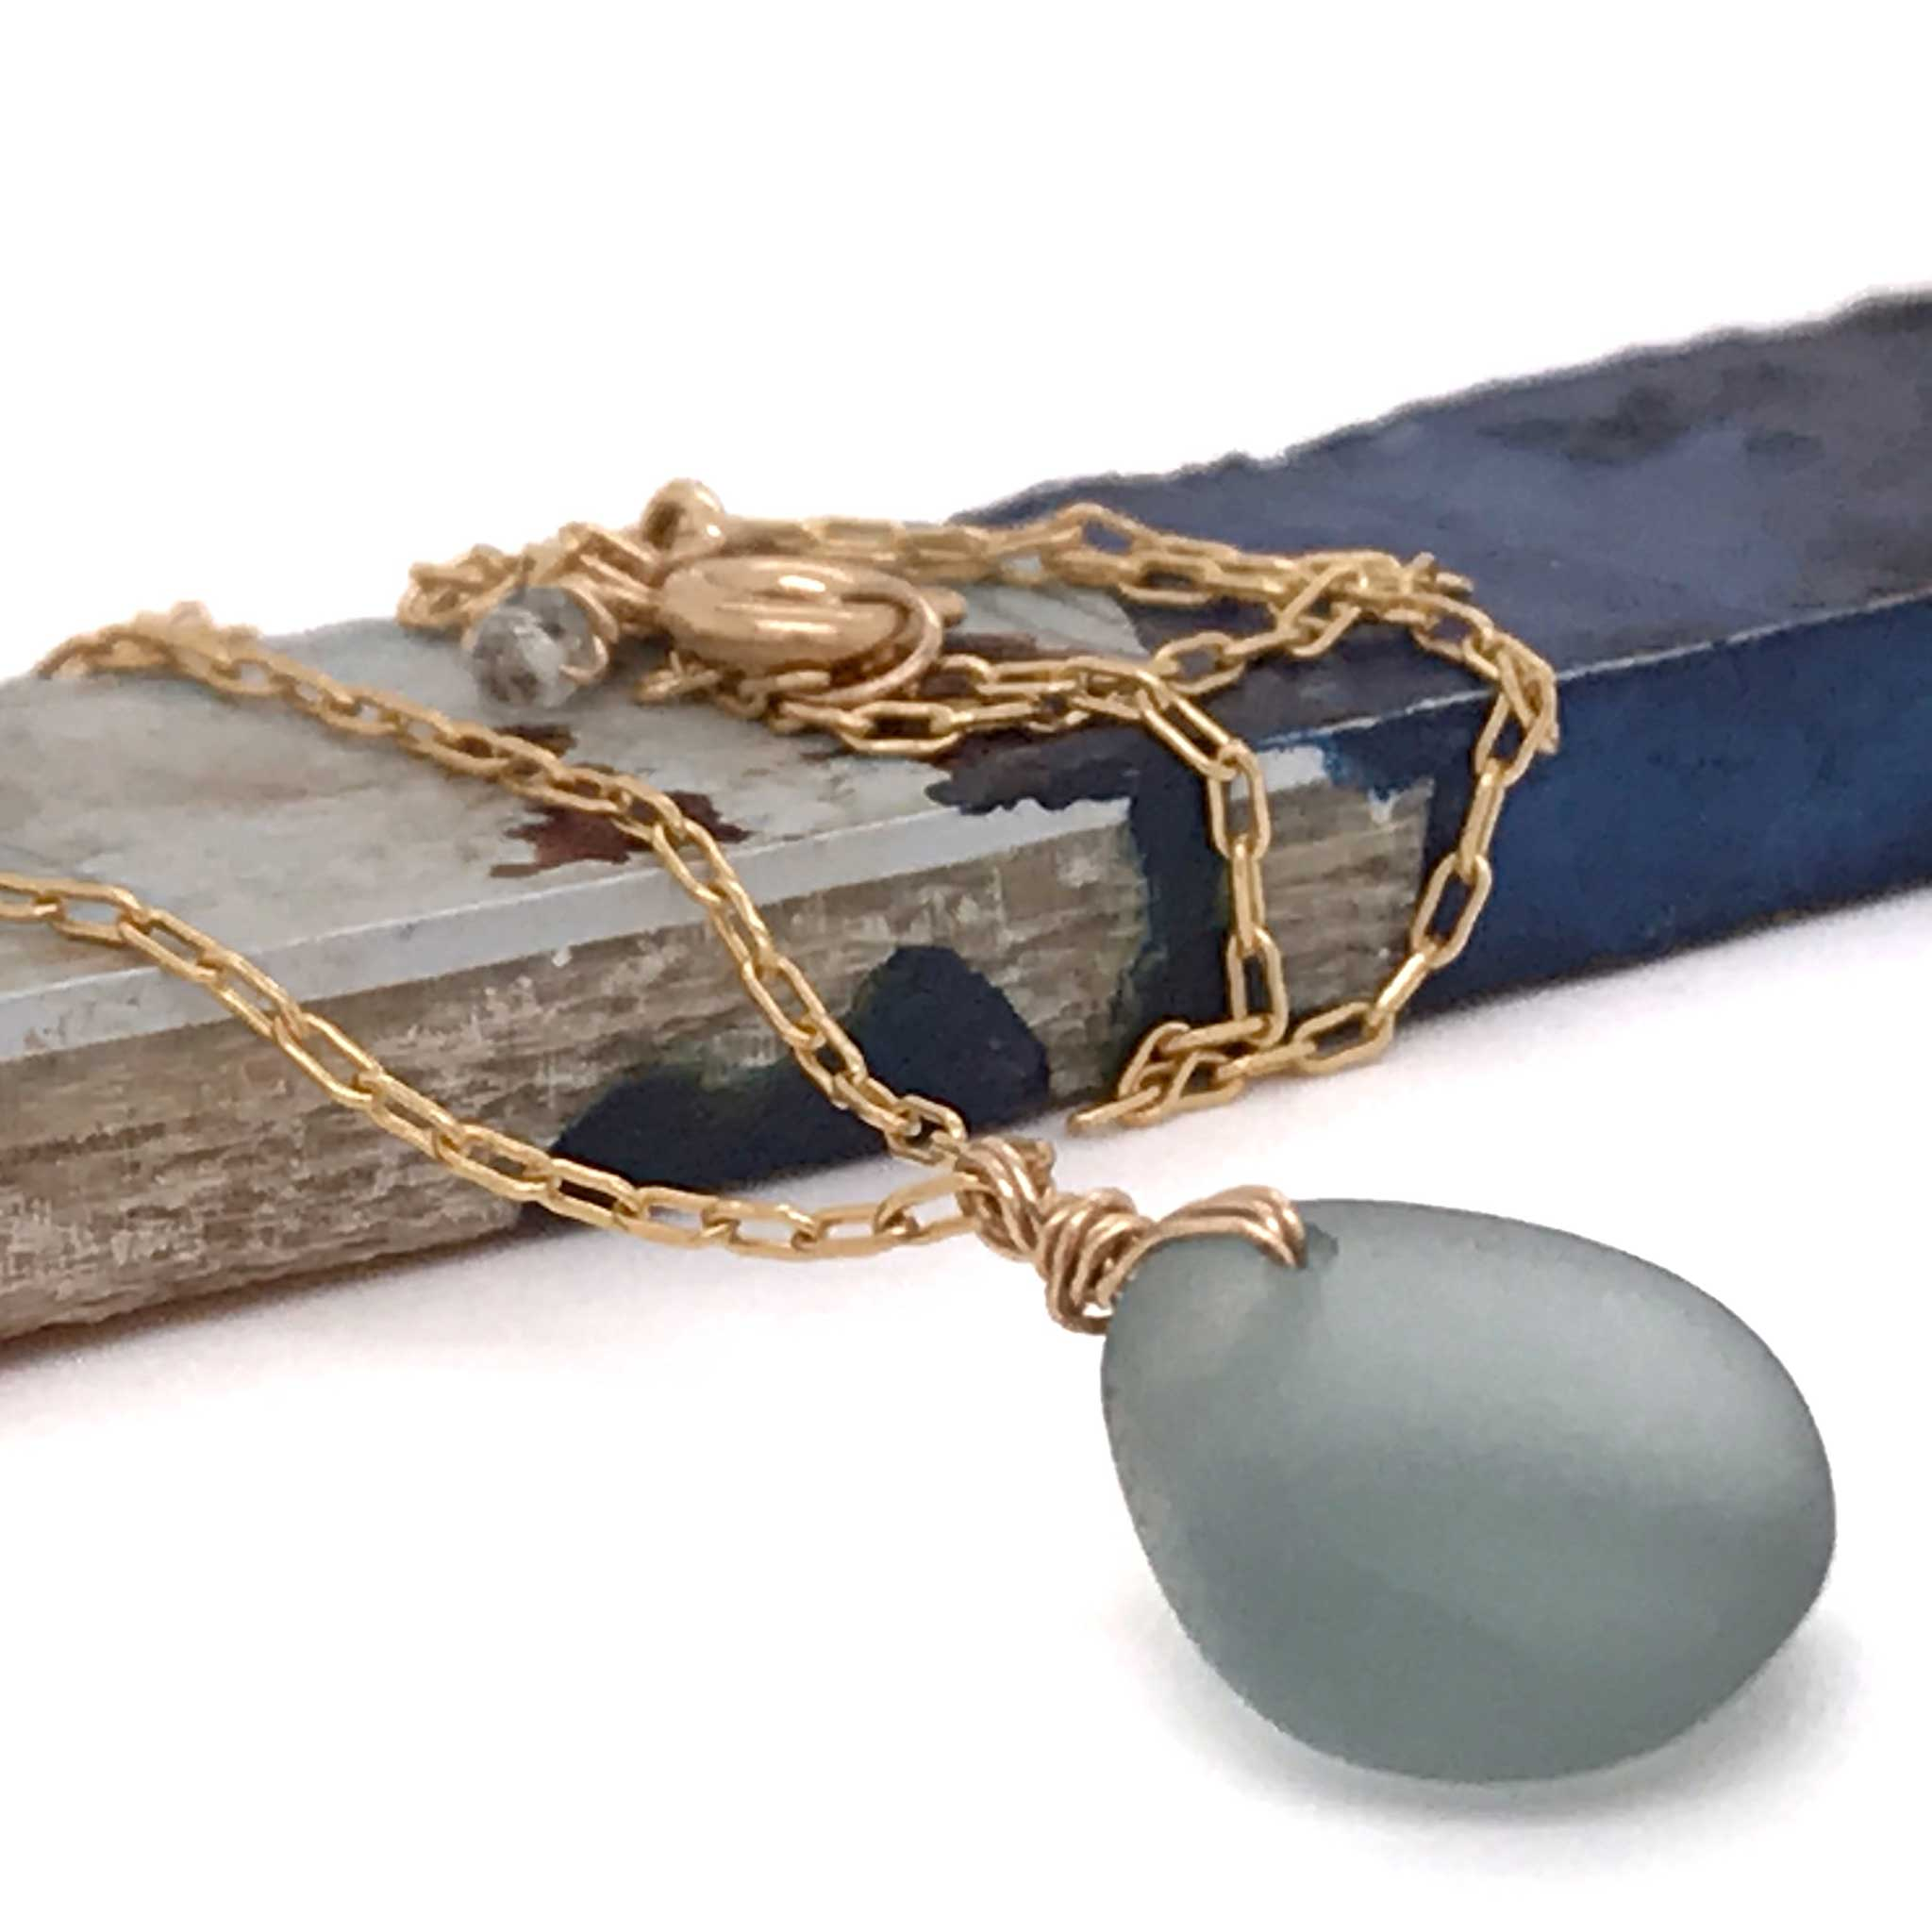 jewelry store near me grey seaglass necklace on gold chain kriket broadhurst